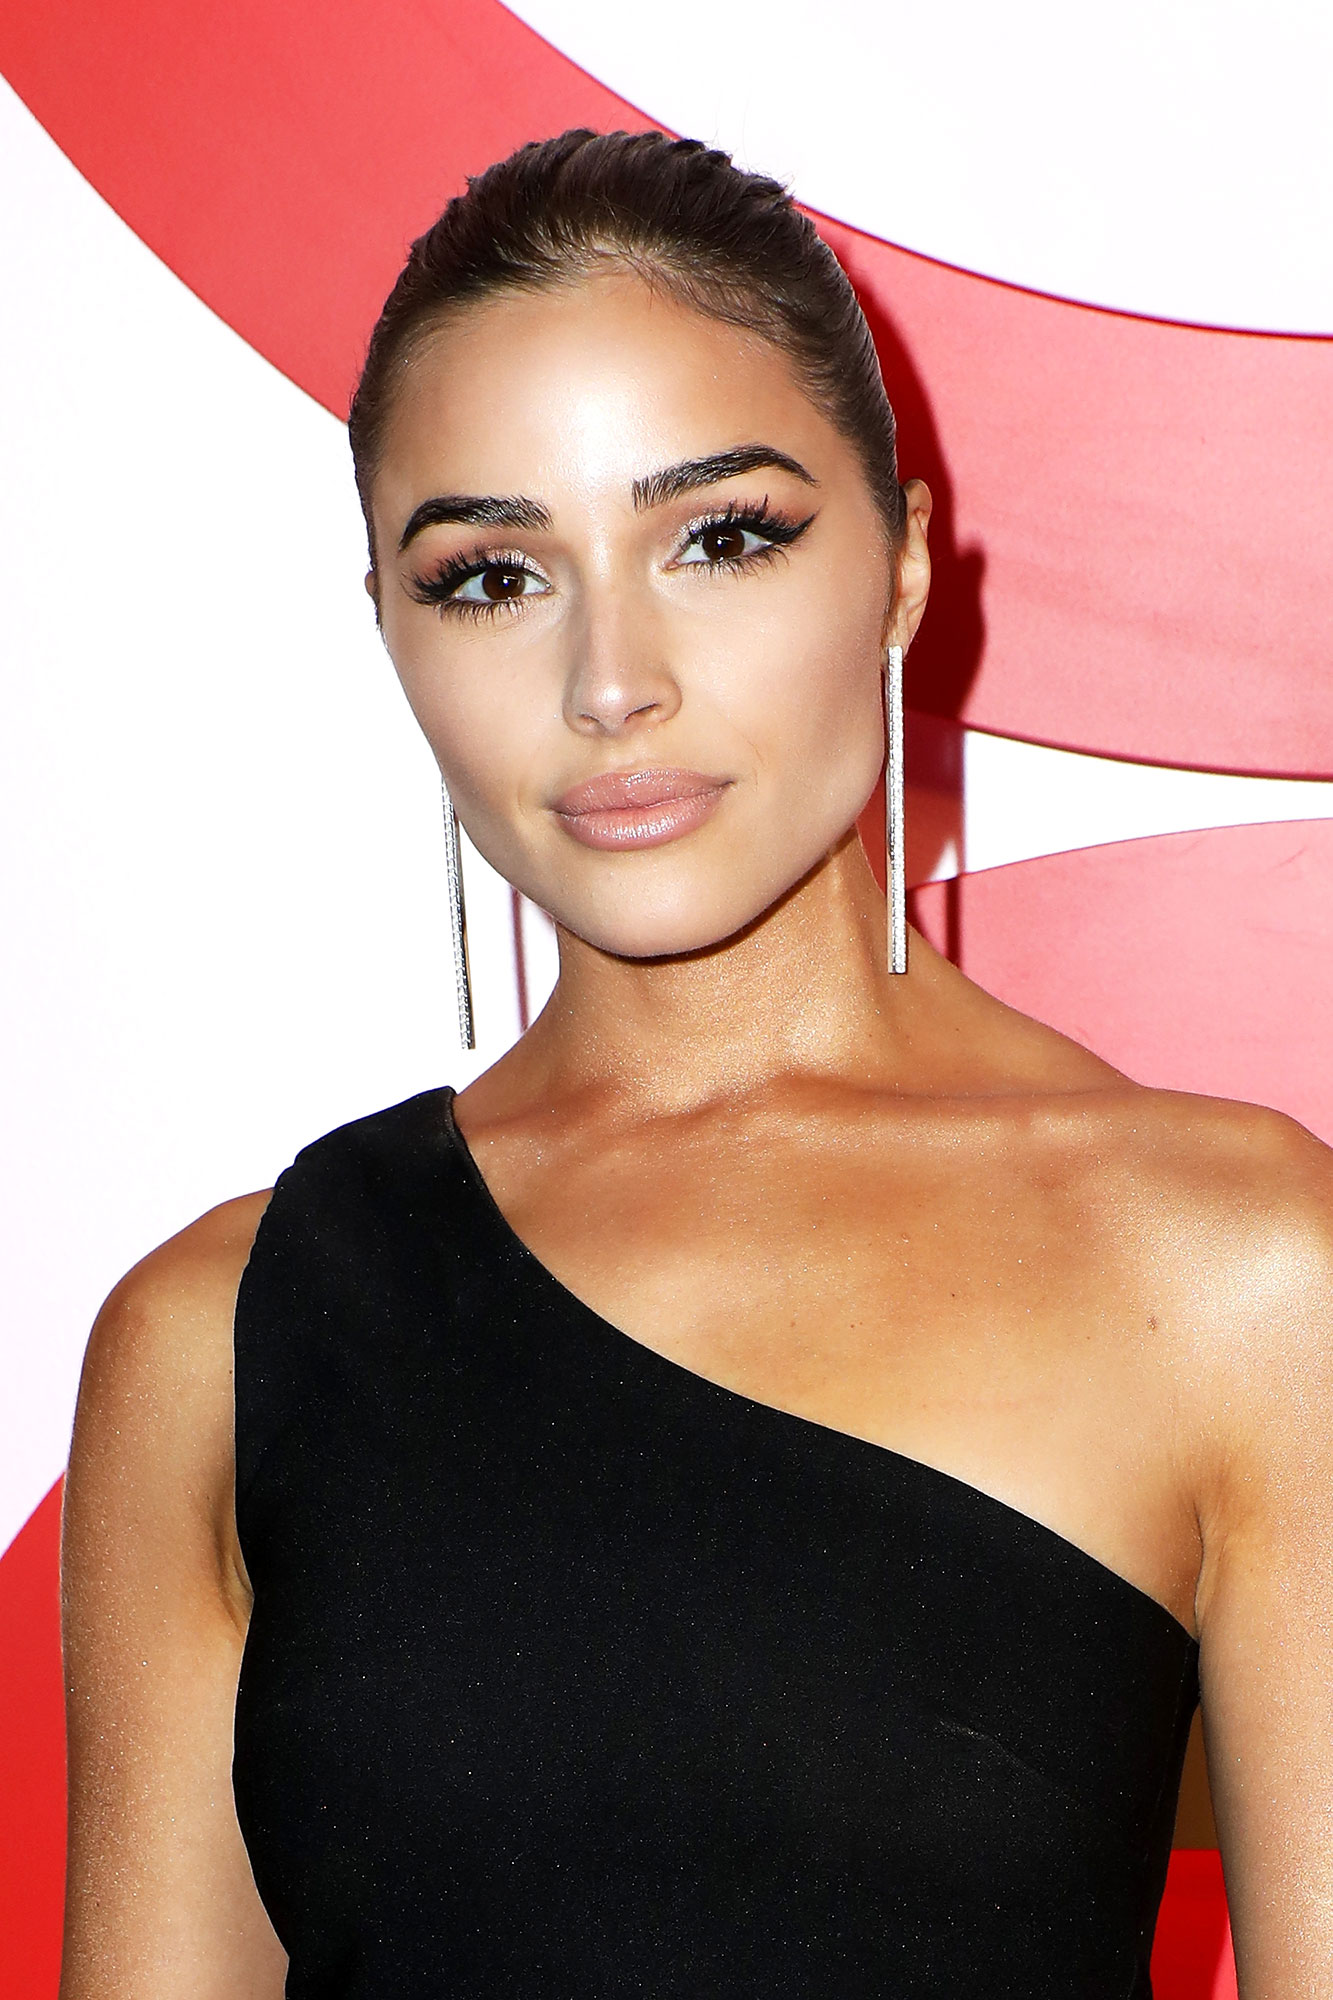 91c8894c612 Olivia Culpo Opens a New Window. is beauty and fashion #goals, and it just  got a whole lot easier to channel her go-to makeup look. The former Miss  Universe ...